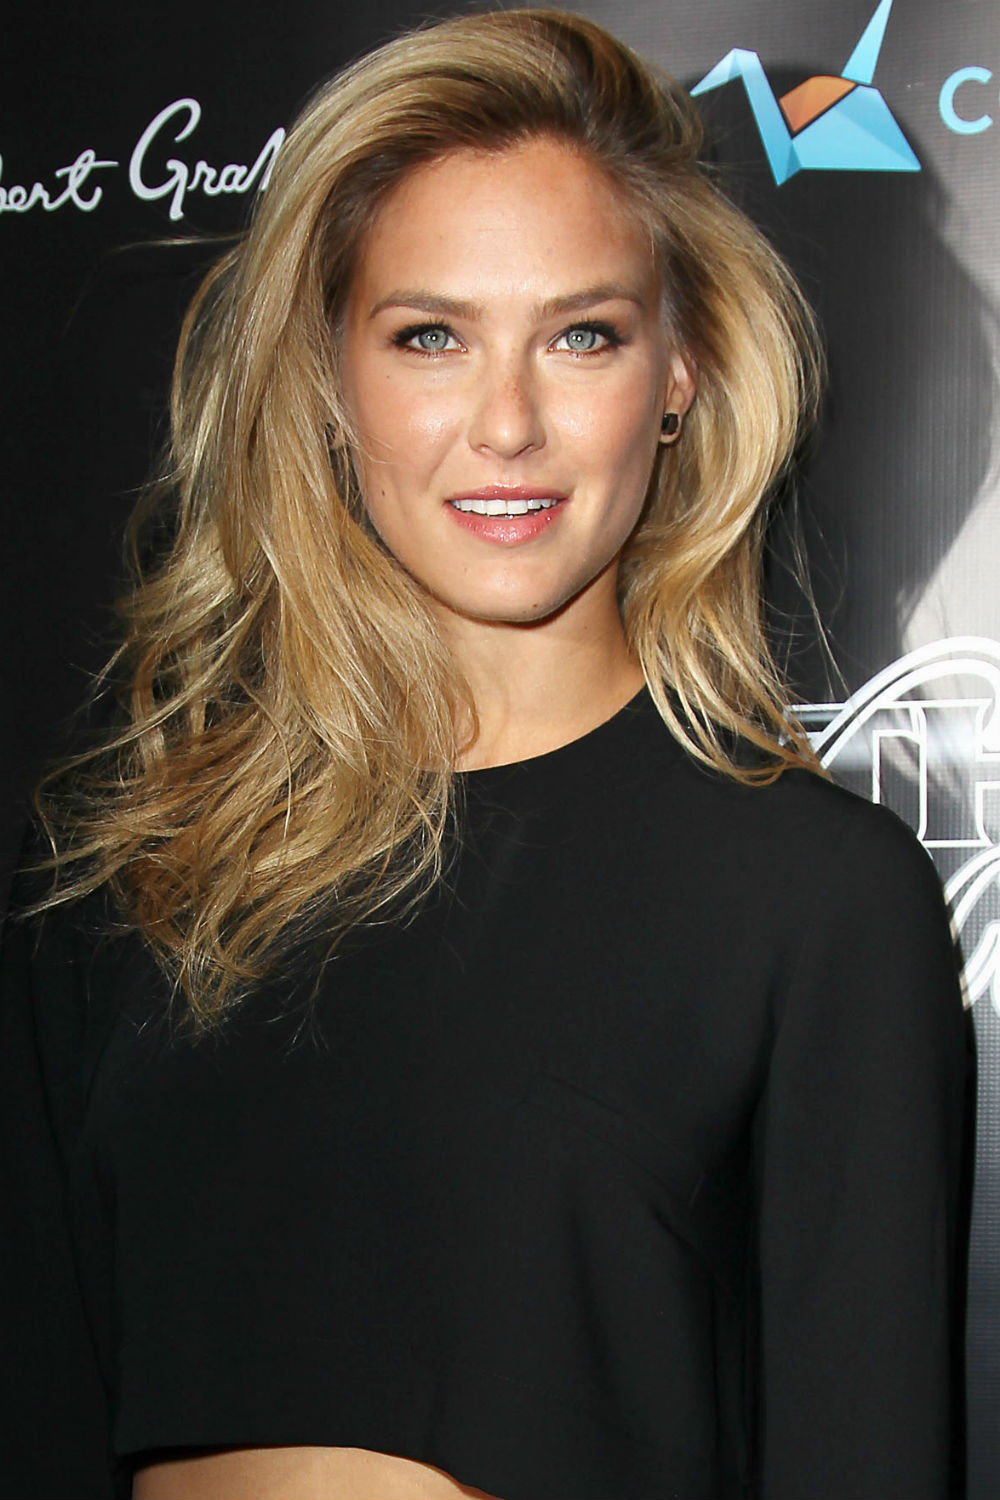 Bar Refaeli Gets A Gold Facial And 5 More Weird